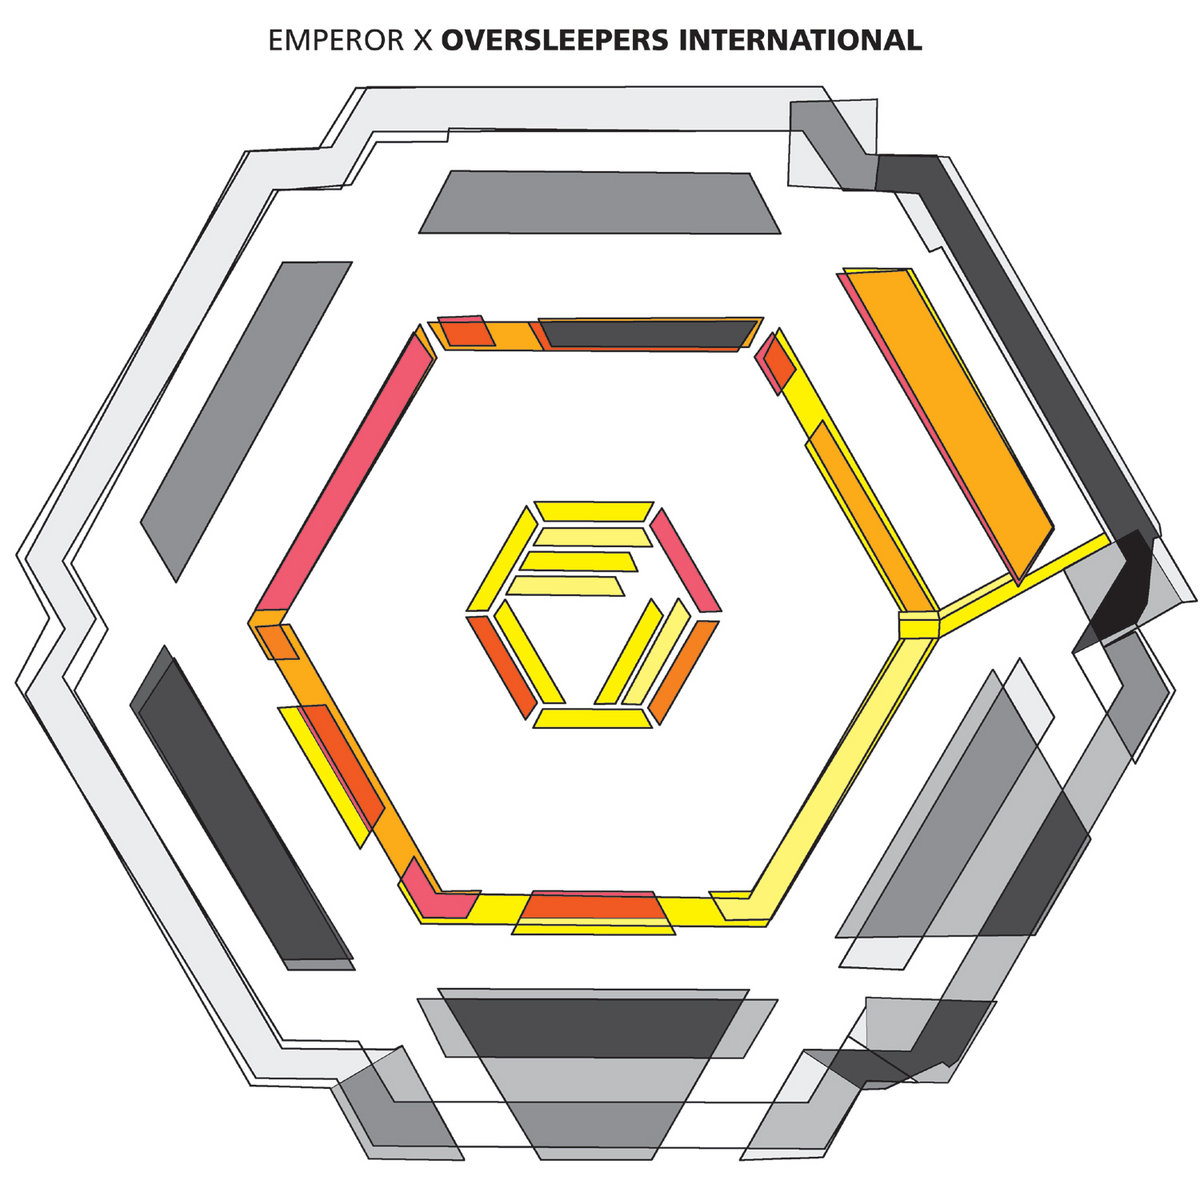 Oversleepers International – Emporer X